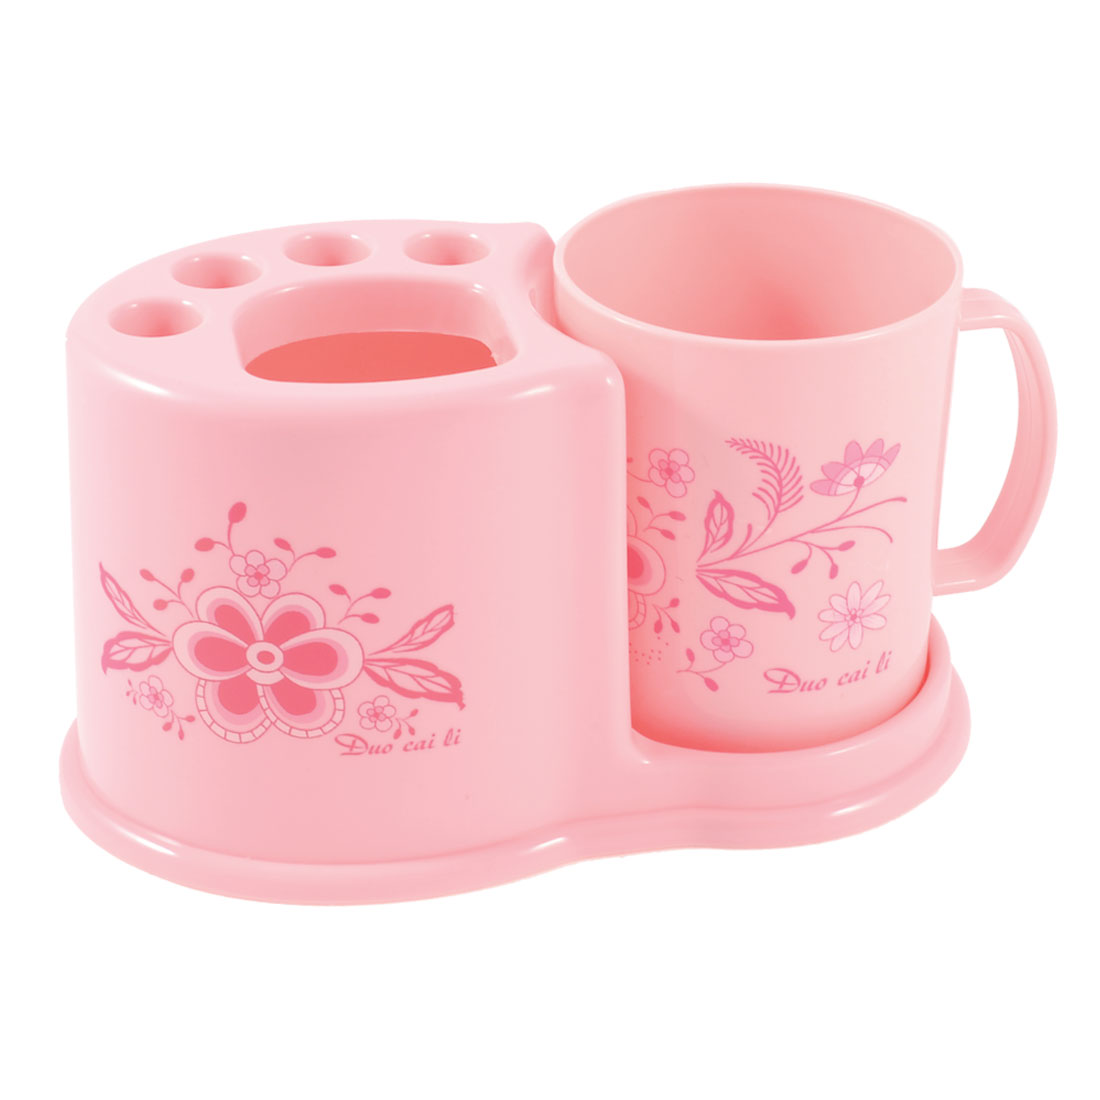 Flower Pattern Pink Toothbrush Toothpaste Plasctic Container Holder w Cup